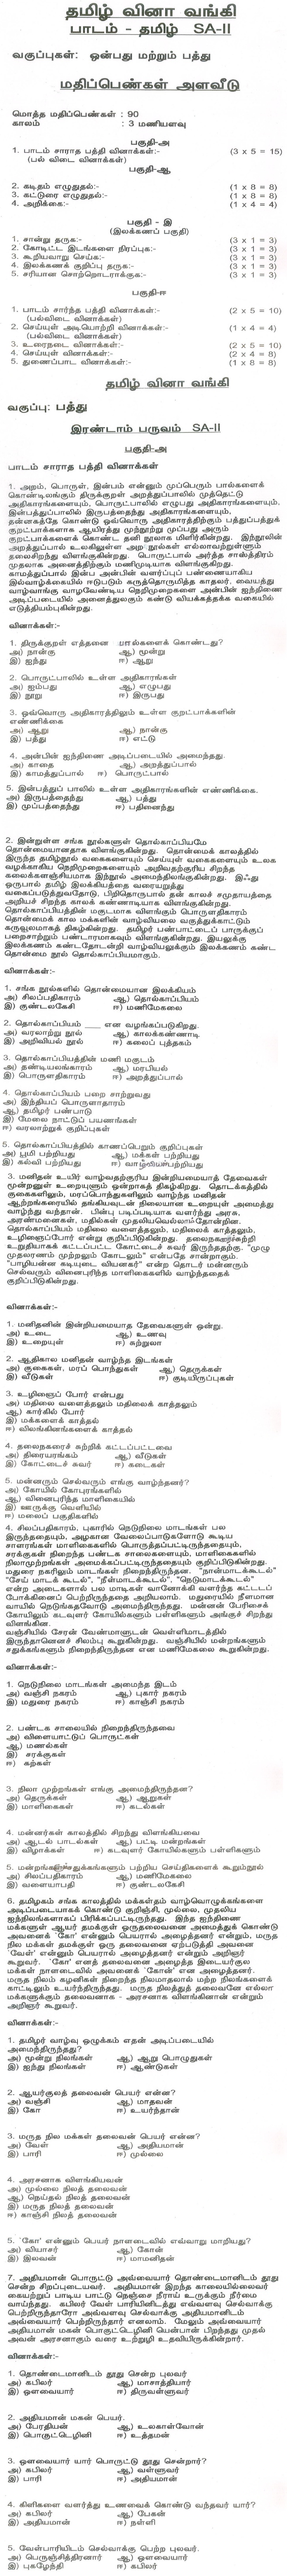 CBSE Class 10 Question Bank - Tamil